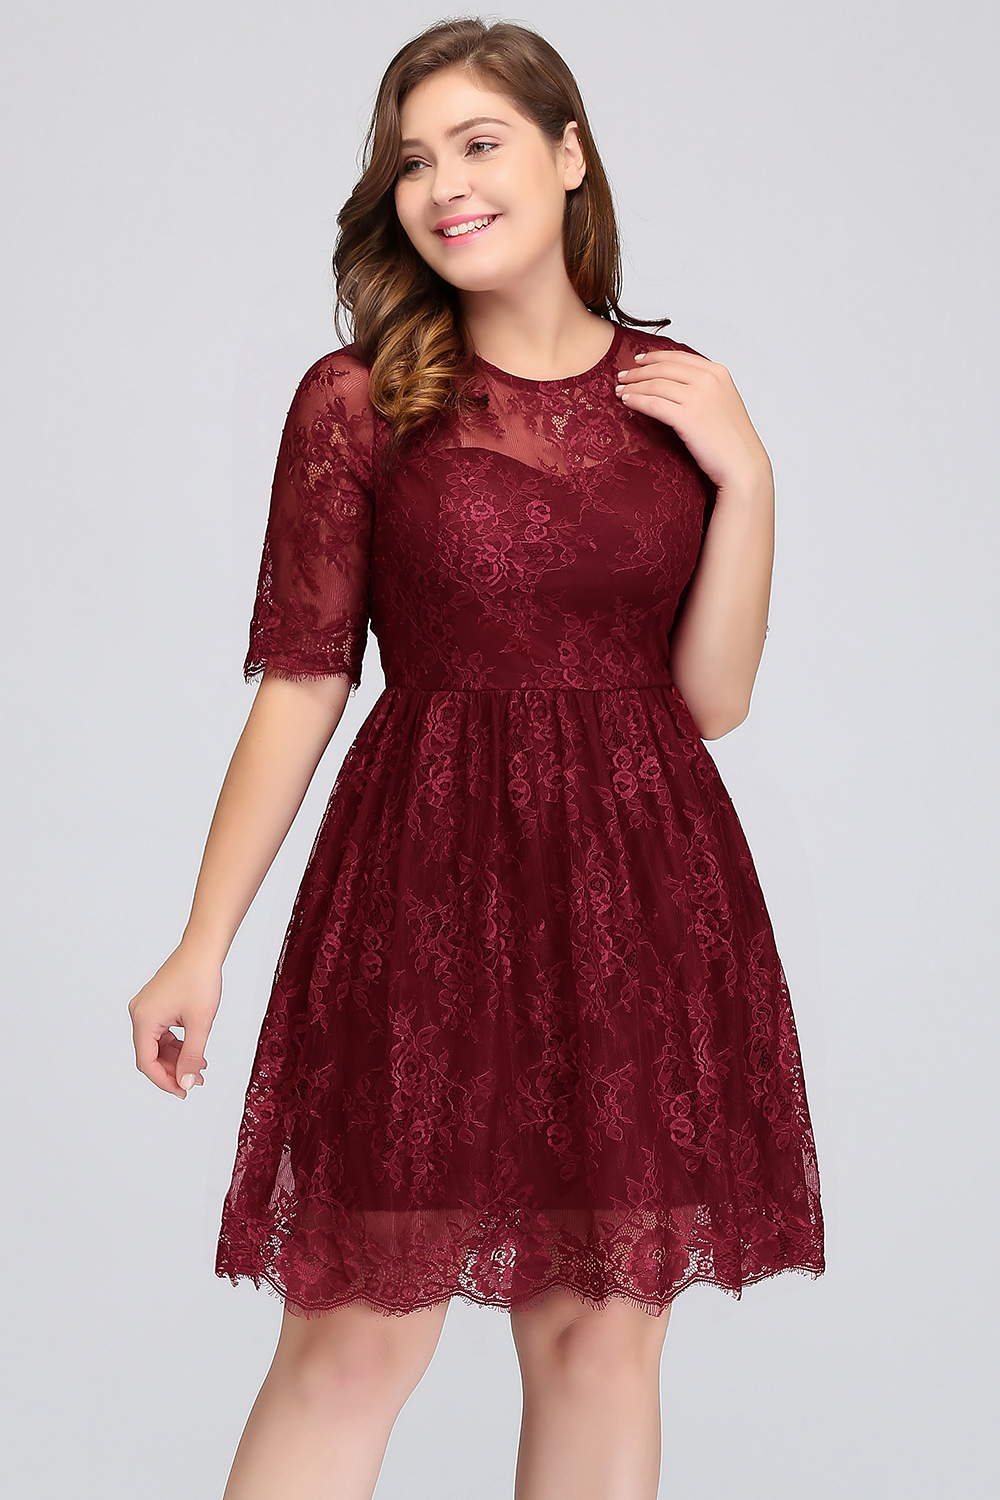 Where To Buy Plus Size Short Formal Dresses - Ficts